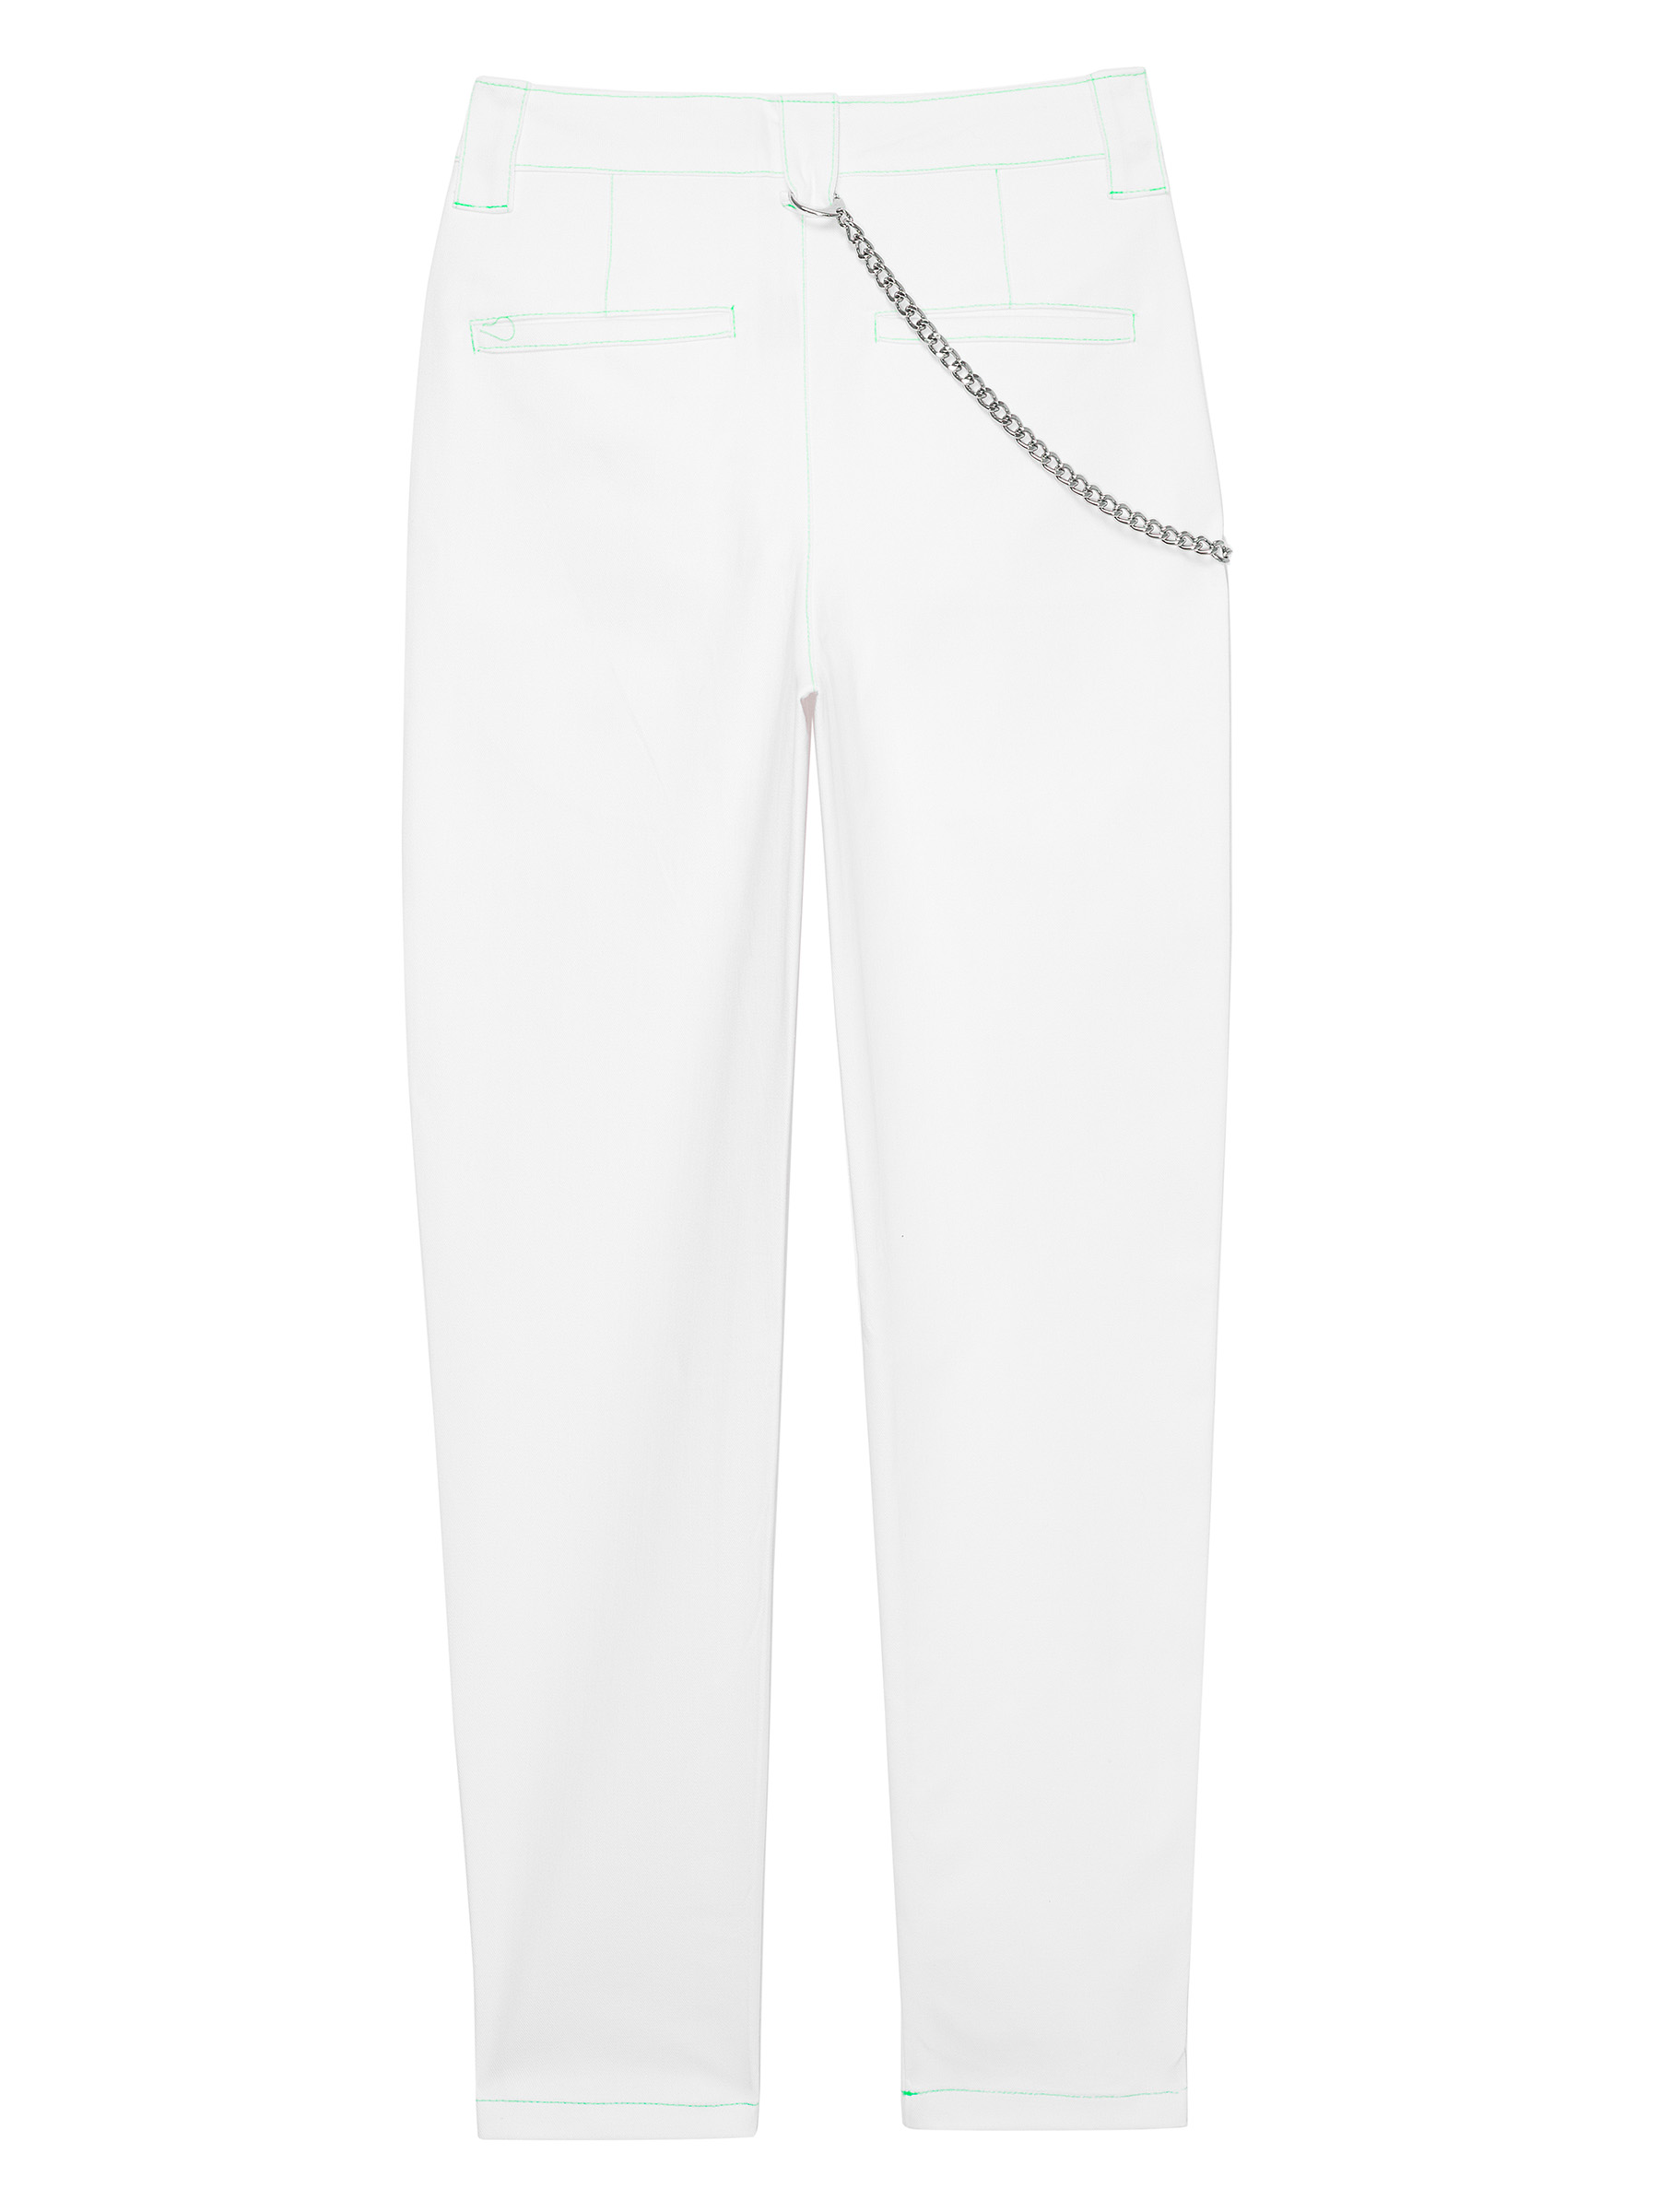 LH WHITE PANTS WITH NEON SEAMS